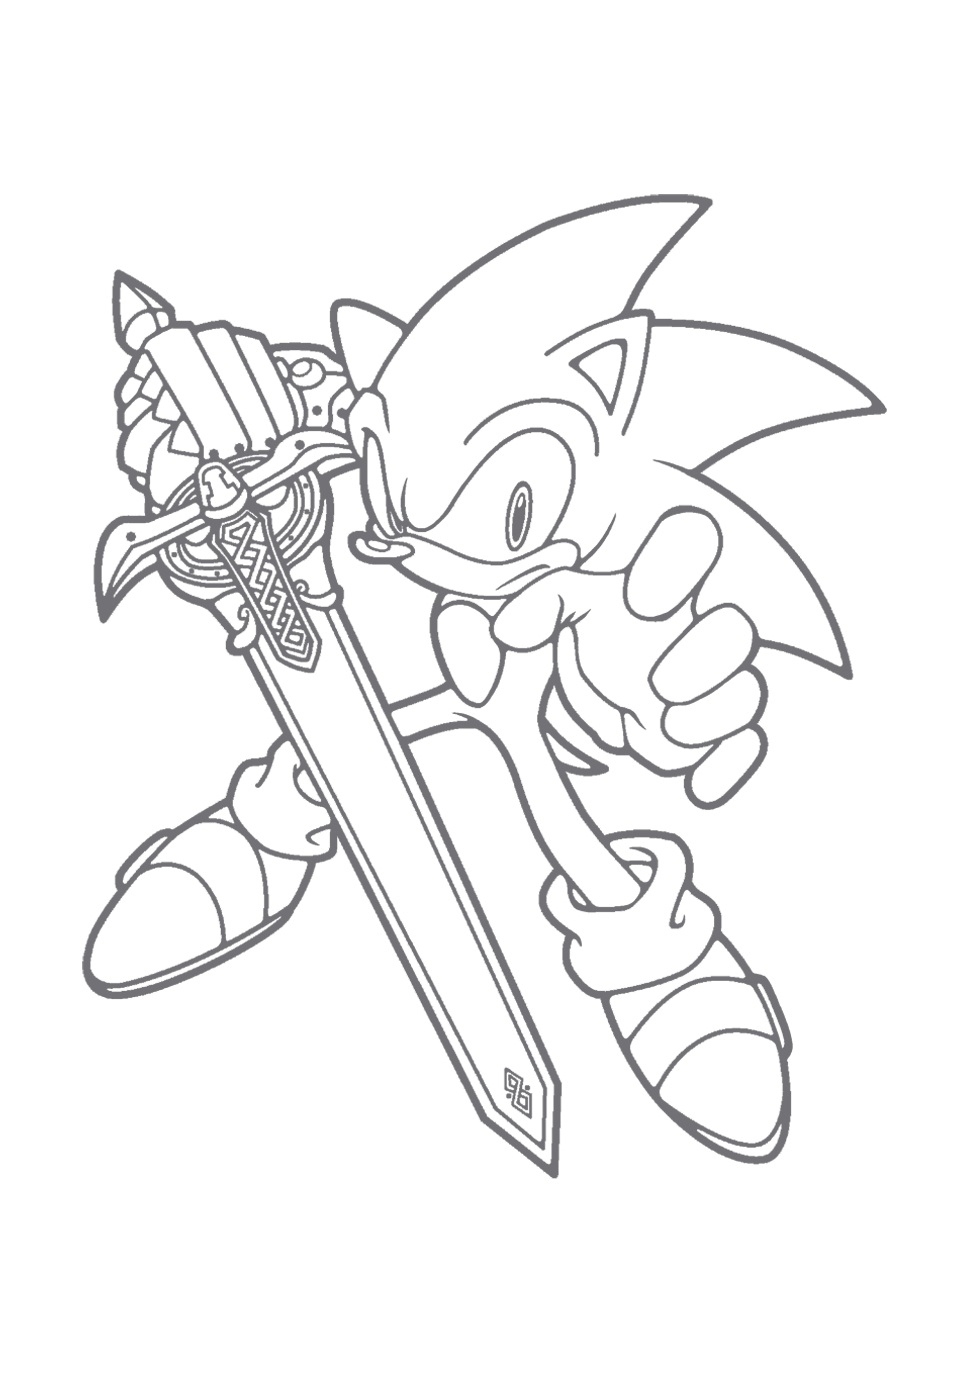 sonic coloring pages sonic the hedgehog coloring pages sonic coloring pages free printable - Free Printable Sonic Coloring Pages 2